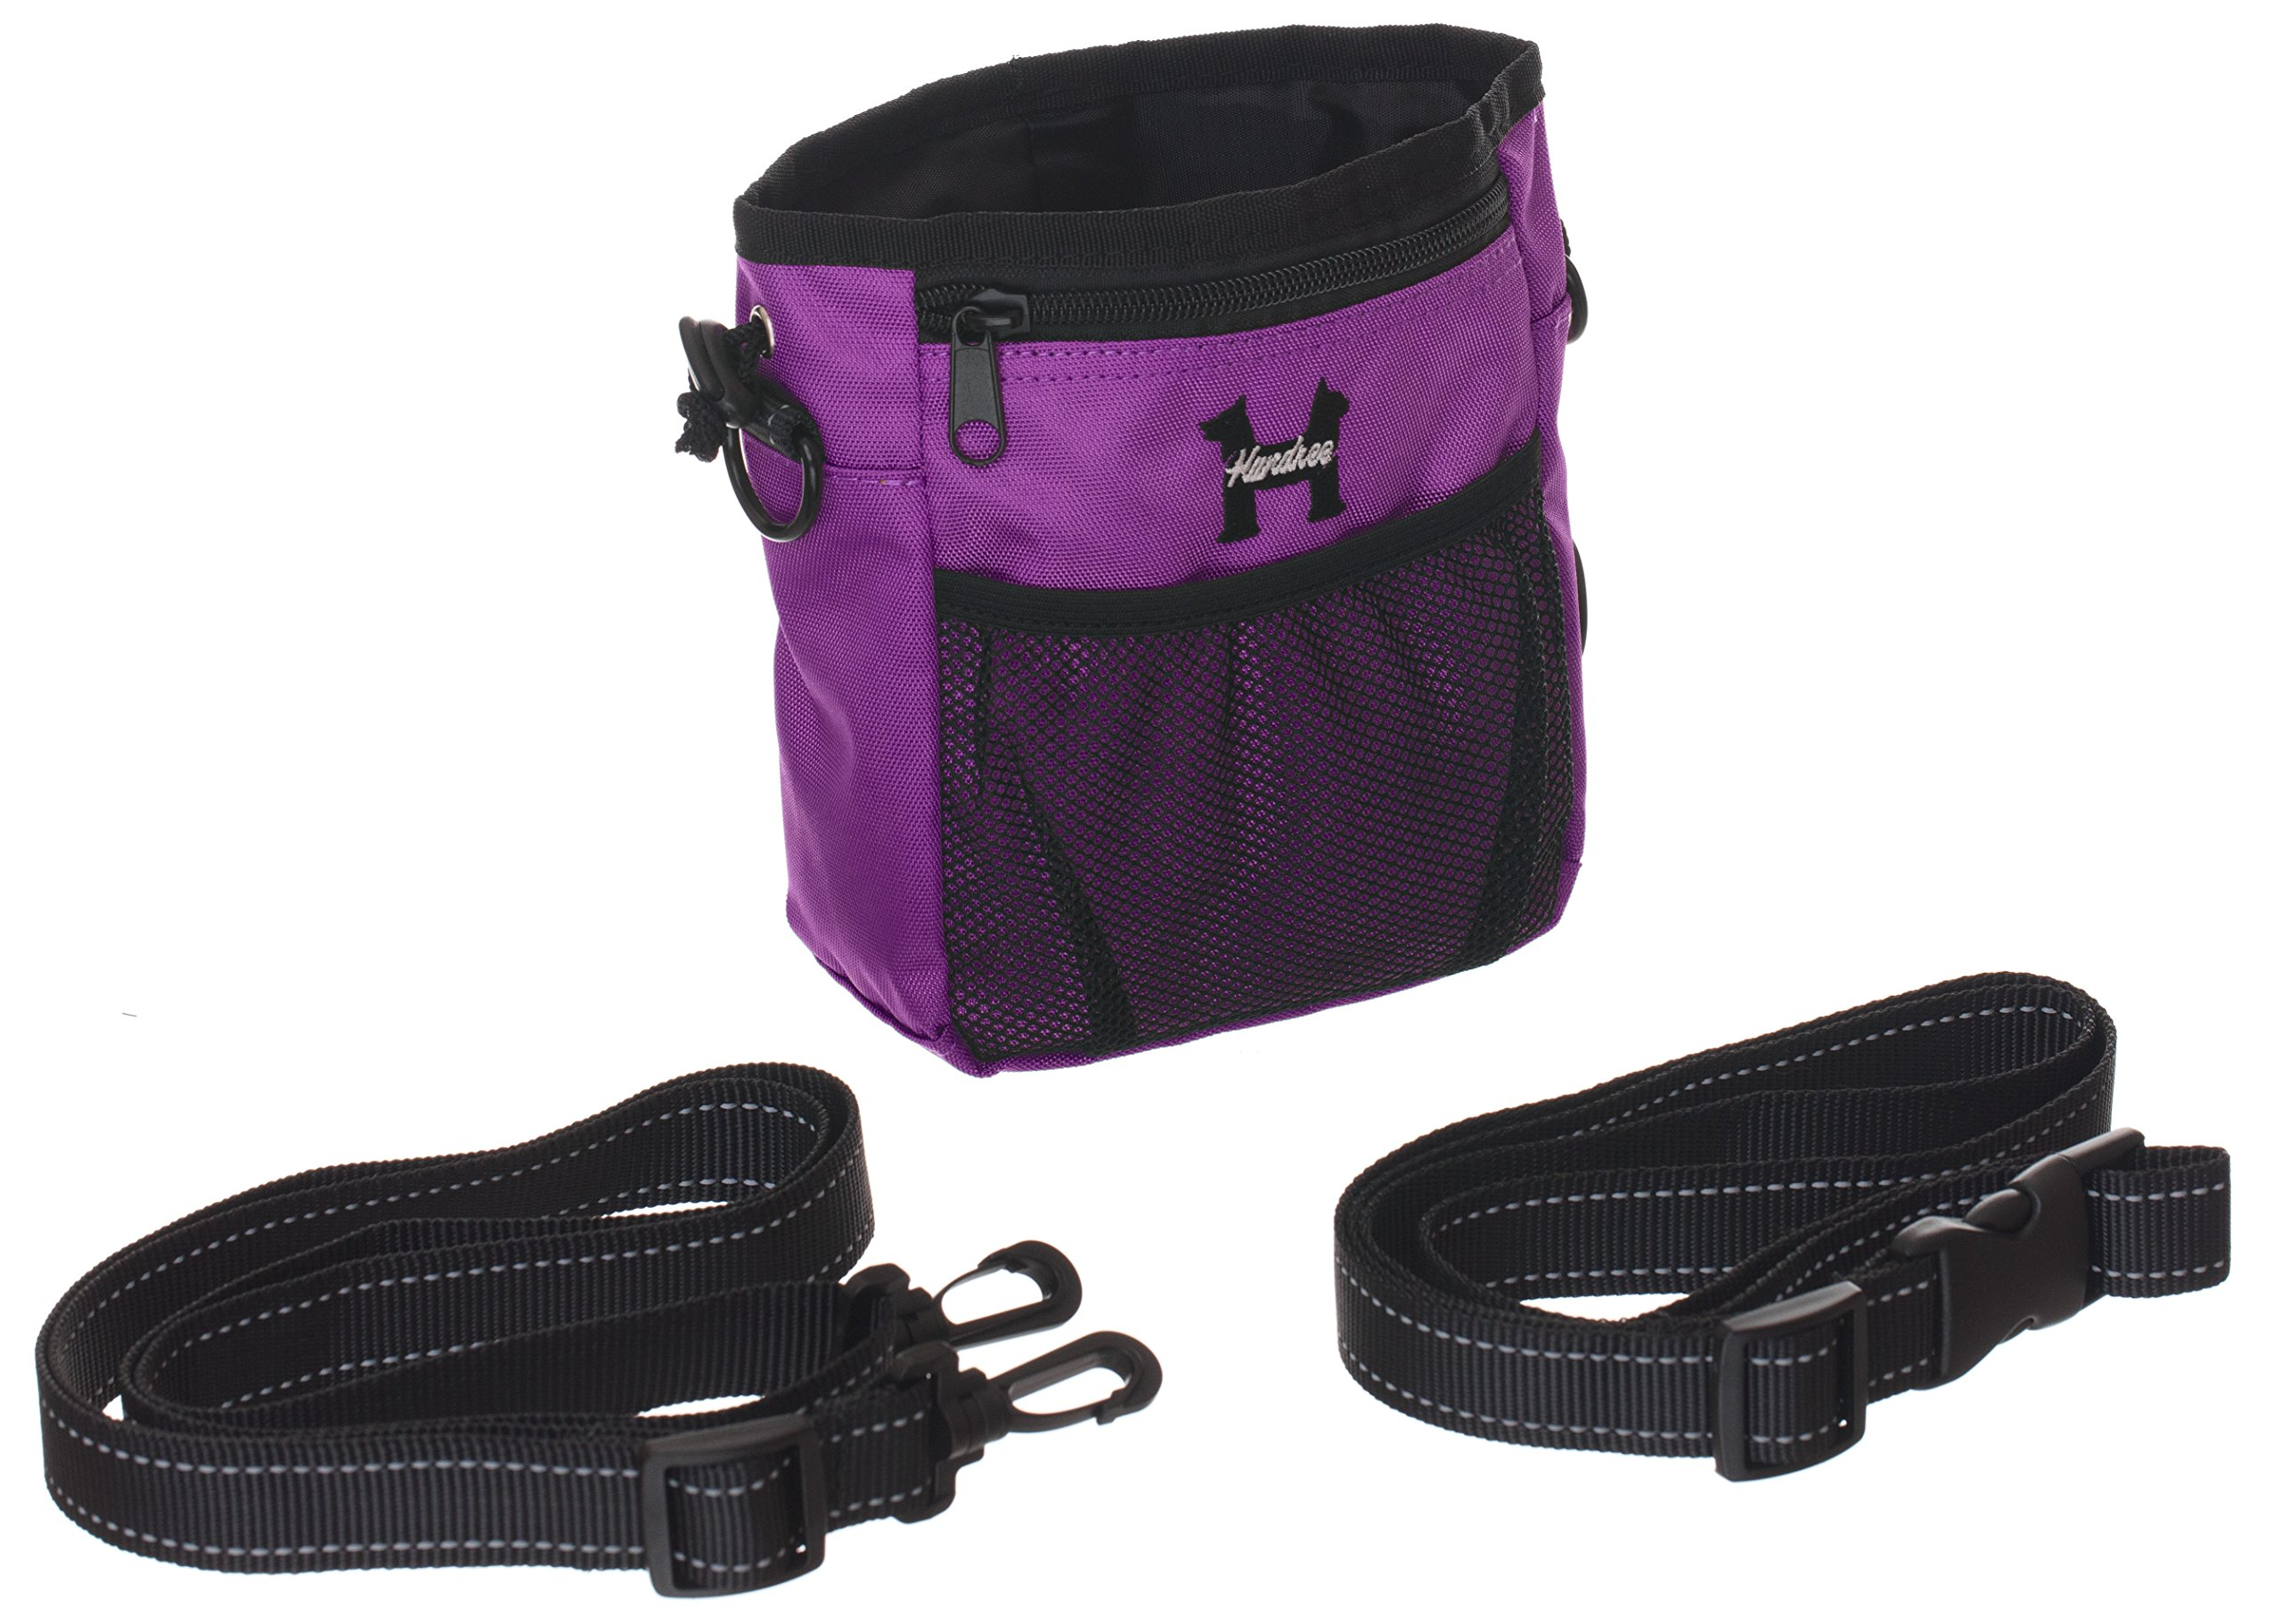 Purple Dog Treat Bag – Treat Training Pouch for Small, Medium and Large Dogs with Built-In Poop Bag Dispenser, Waist and Shoulder Reflective Straps and Belt Clip - Puppy and Adult Dog Treats Tote Bag